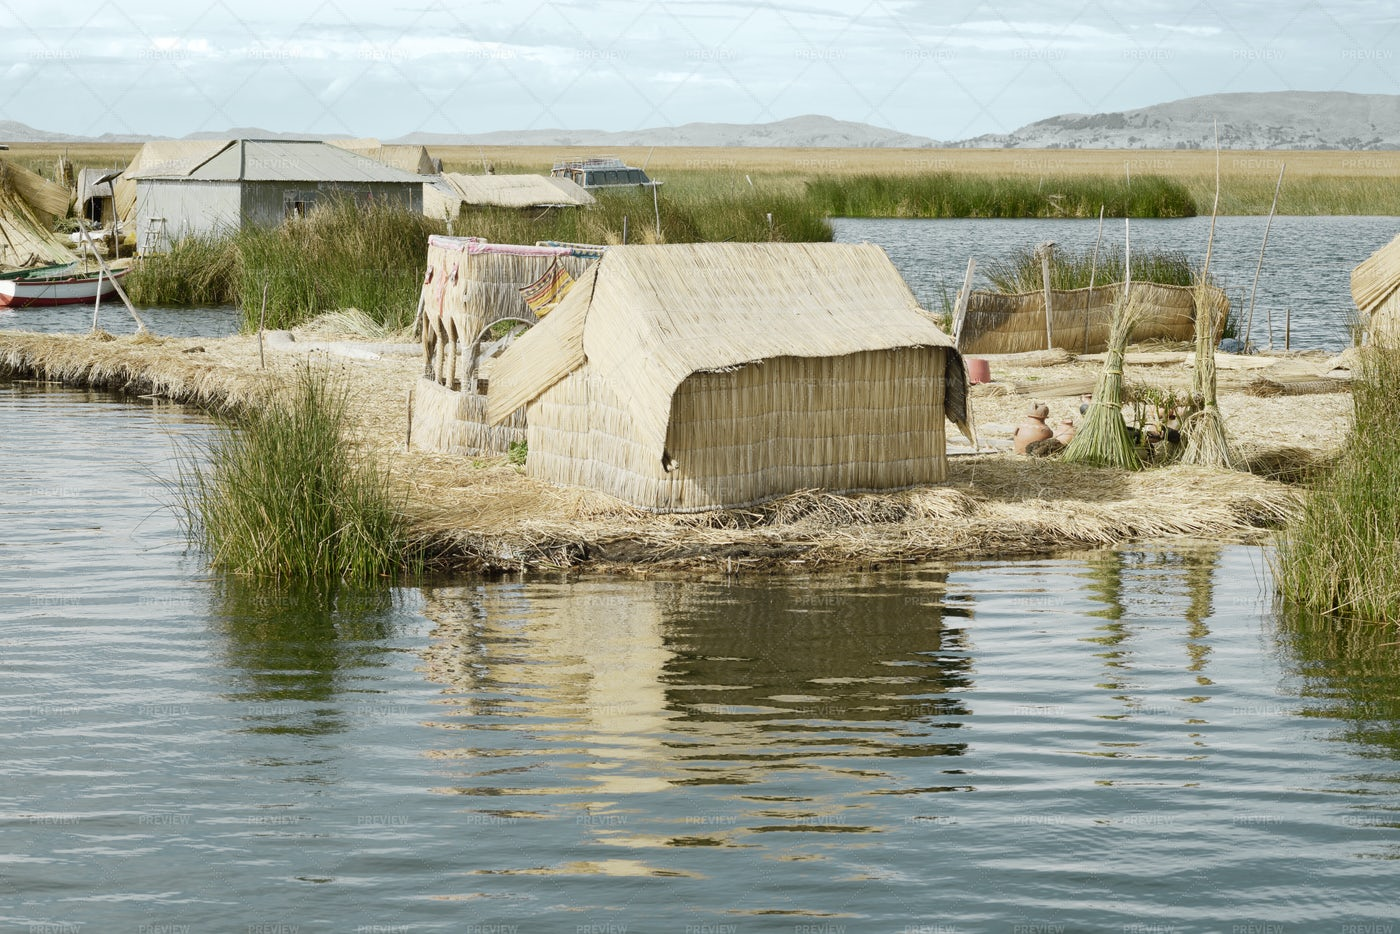 Little Houses Of The Uros Islands: Stock Photos